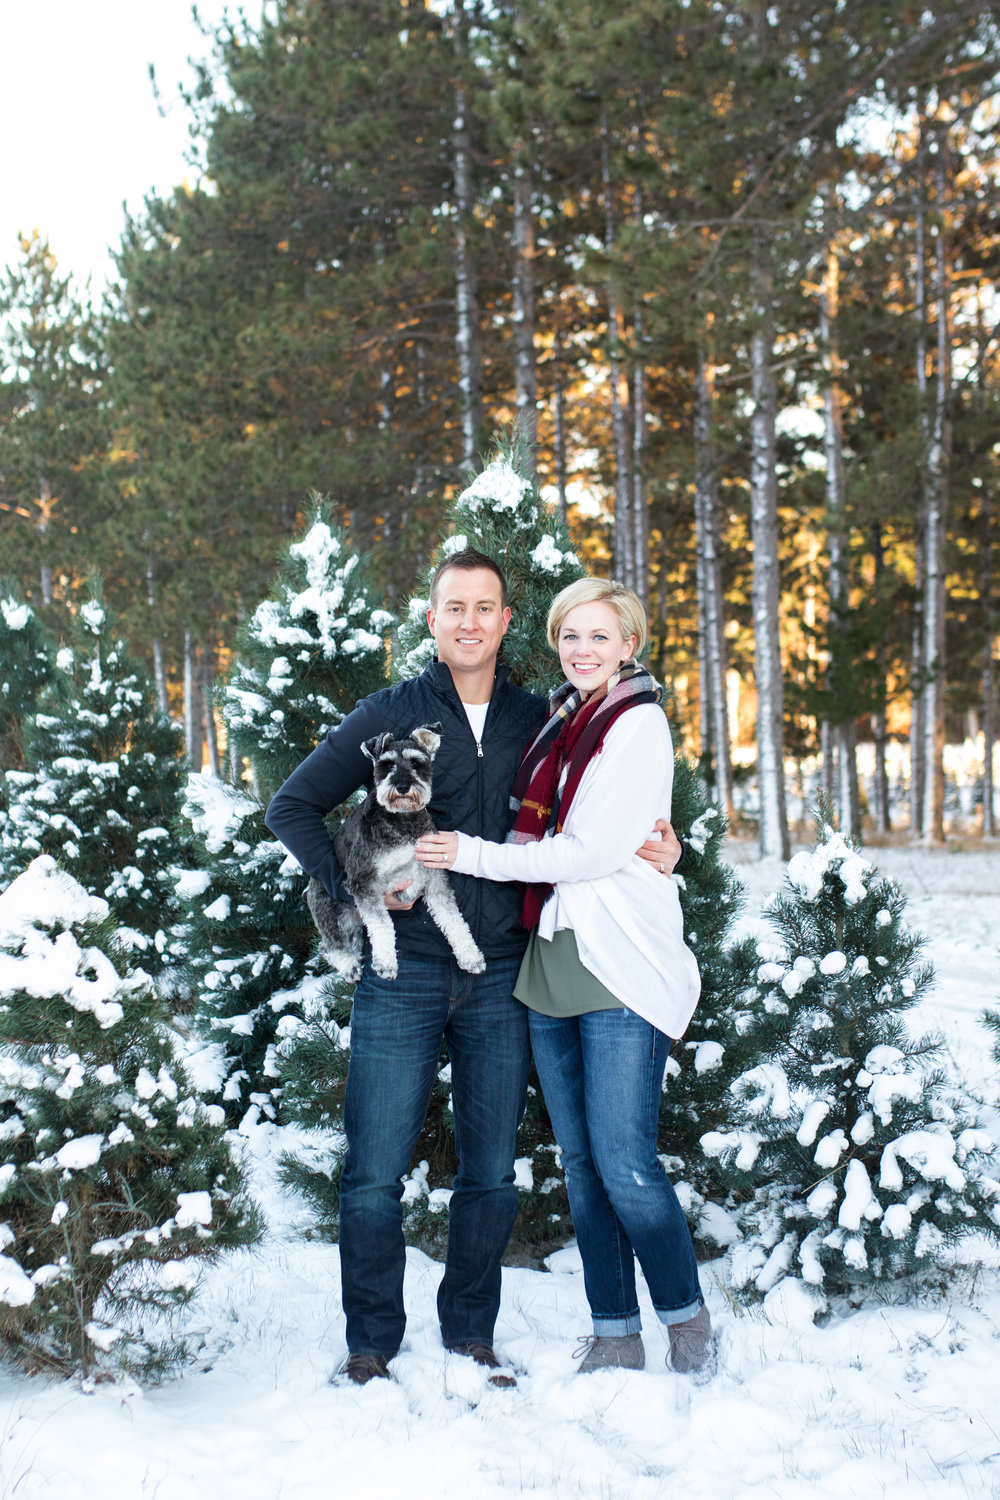 Nielsen Mini Session - Hansen Tree Farm -Sabrina Reis Photography - Minneapolis -29.jpg